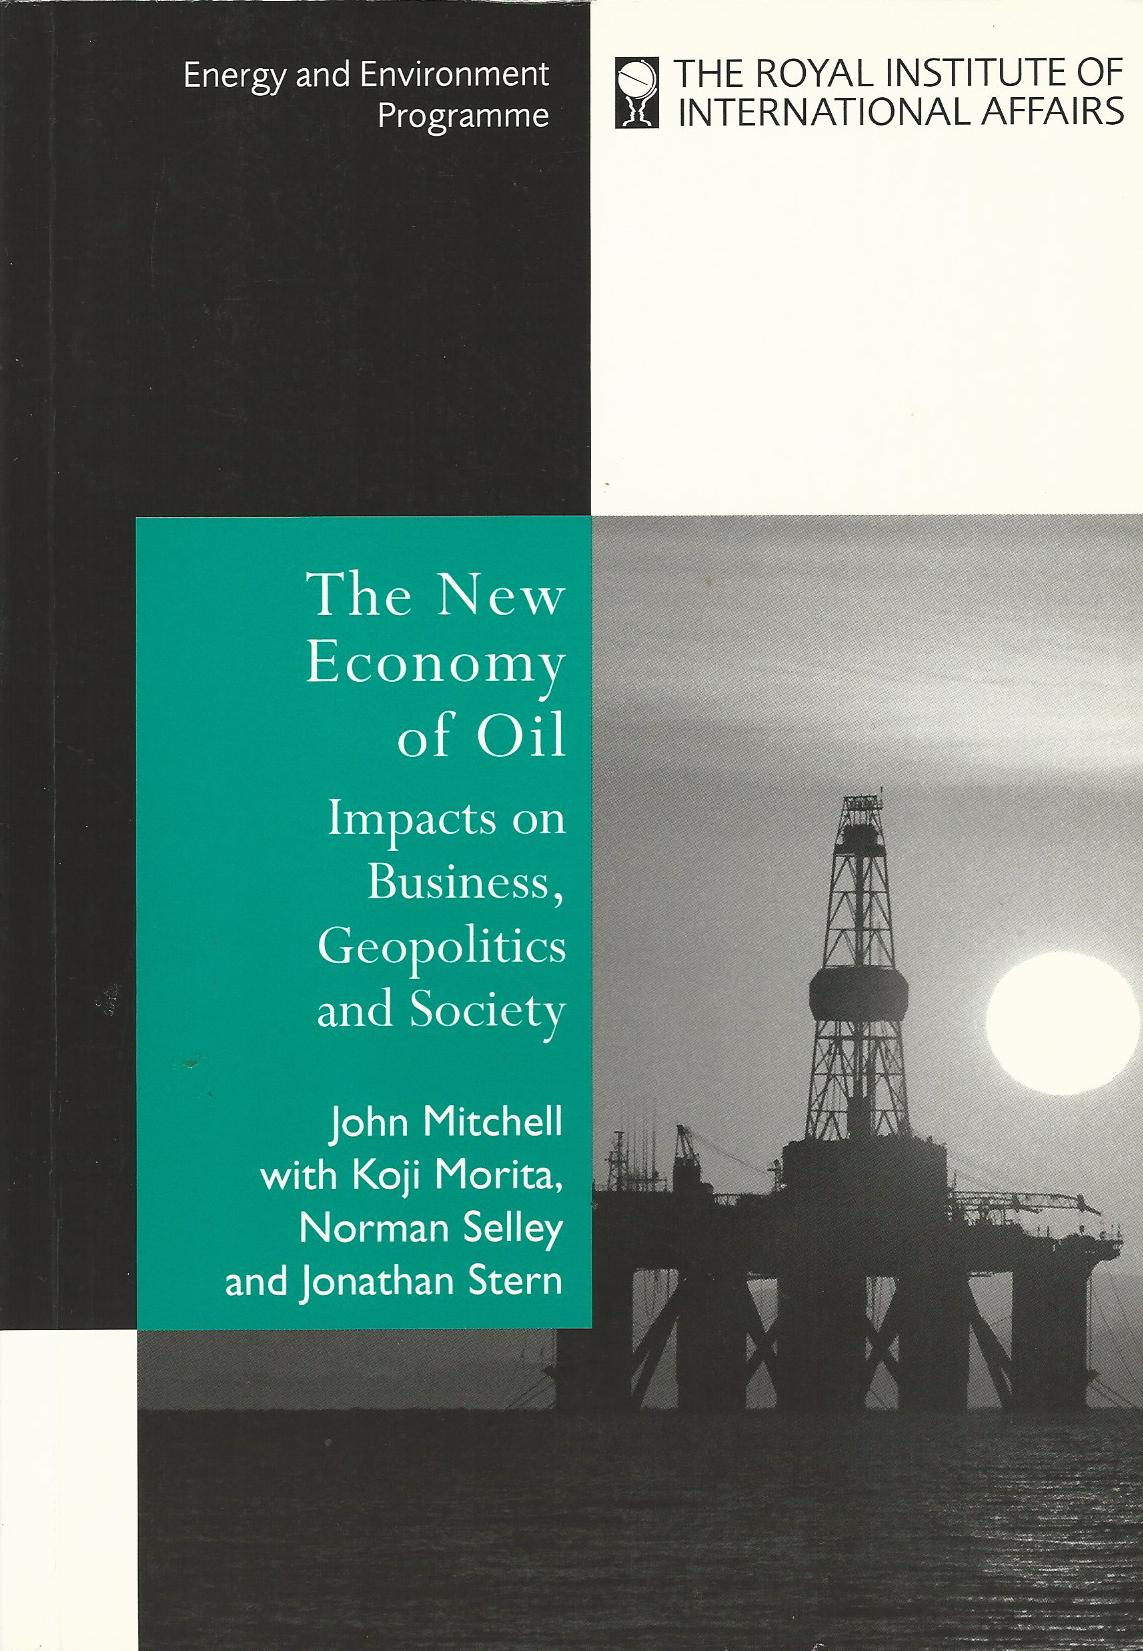 Image for The New Economy of Oil: Impacts on Business, Geopolitics and Society (Energy & Environmental Programme)